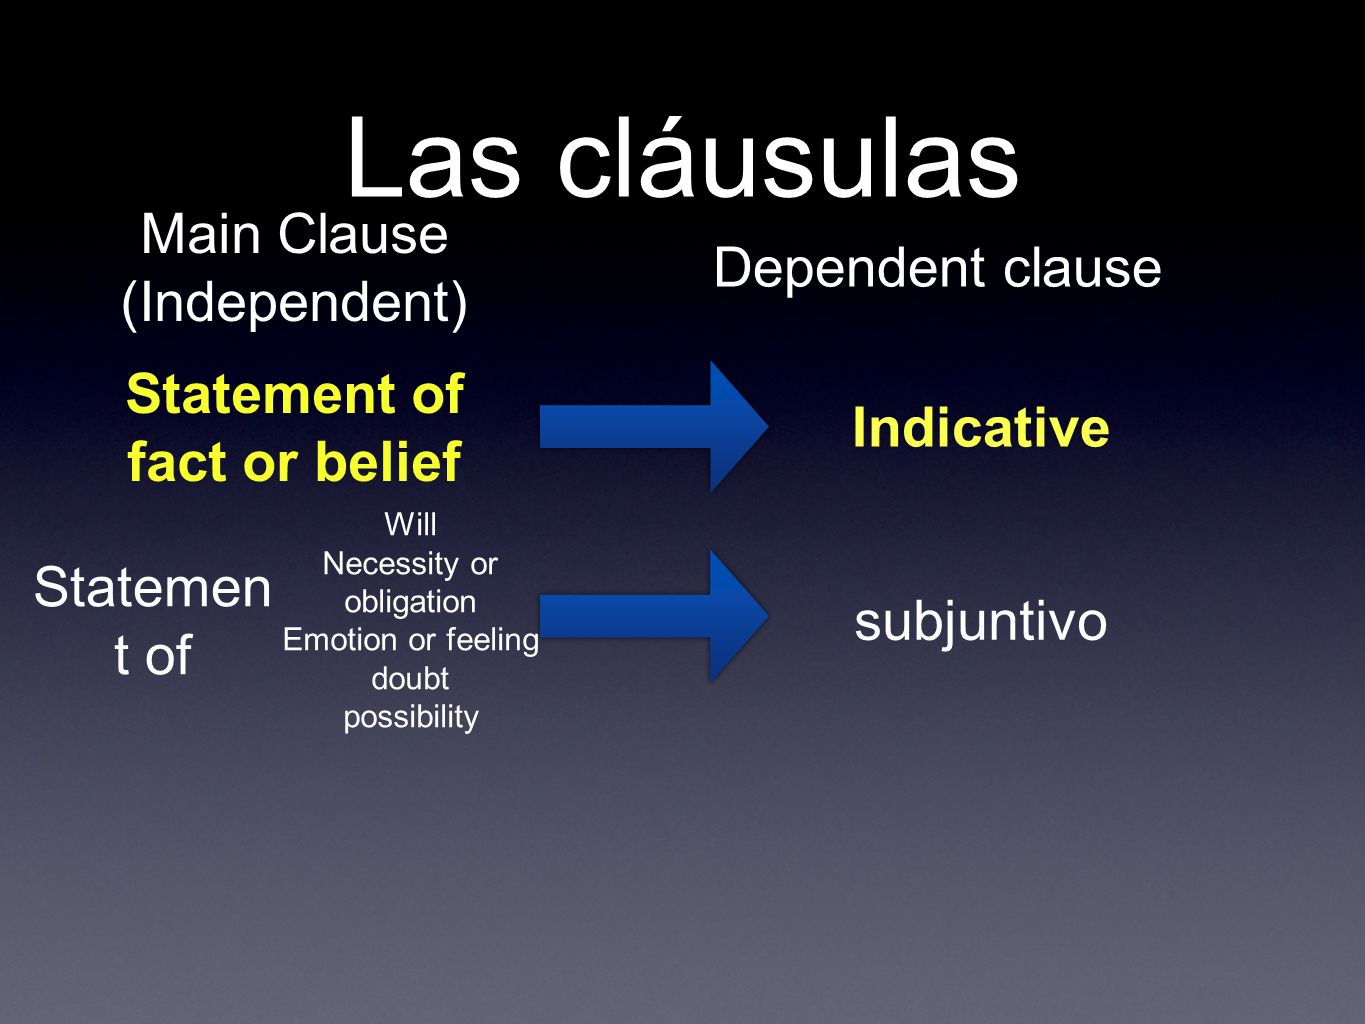 Las cláusulas Main Clause (Independent) Dependent clause Statement of fact or belief Indicative Statemen t of subjuntivo Will Necessity or obligation Emotion or feeling doubt possibility